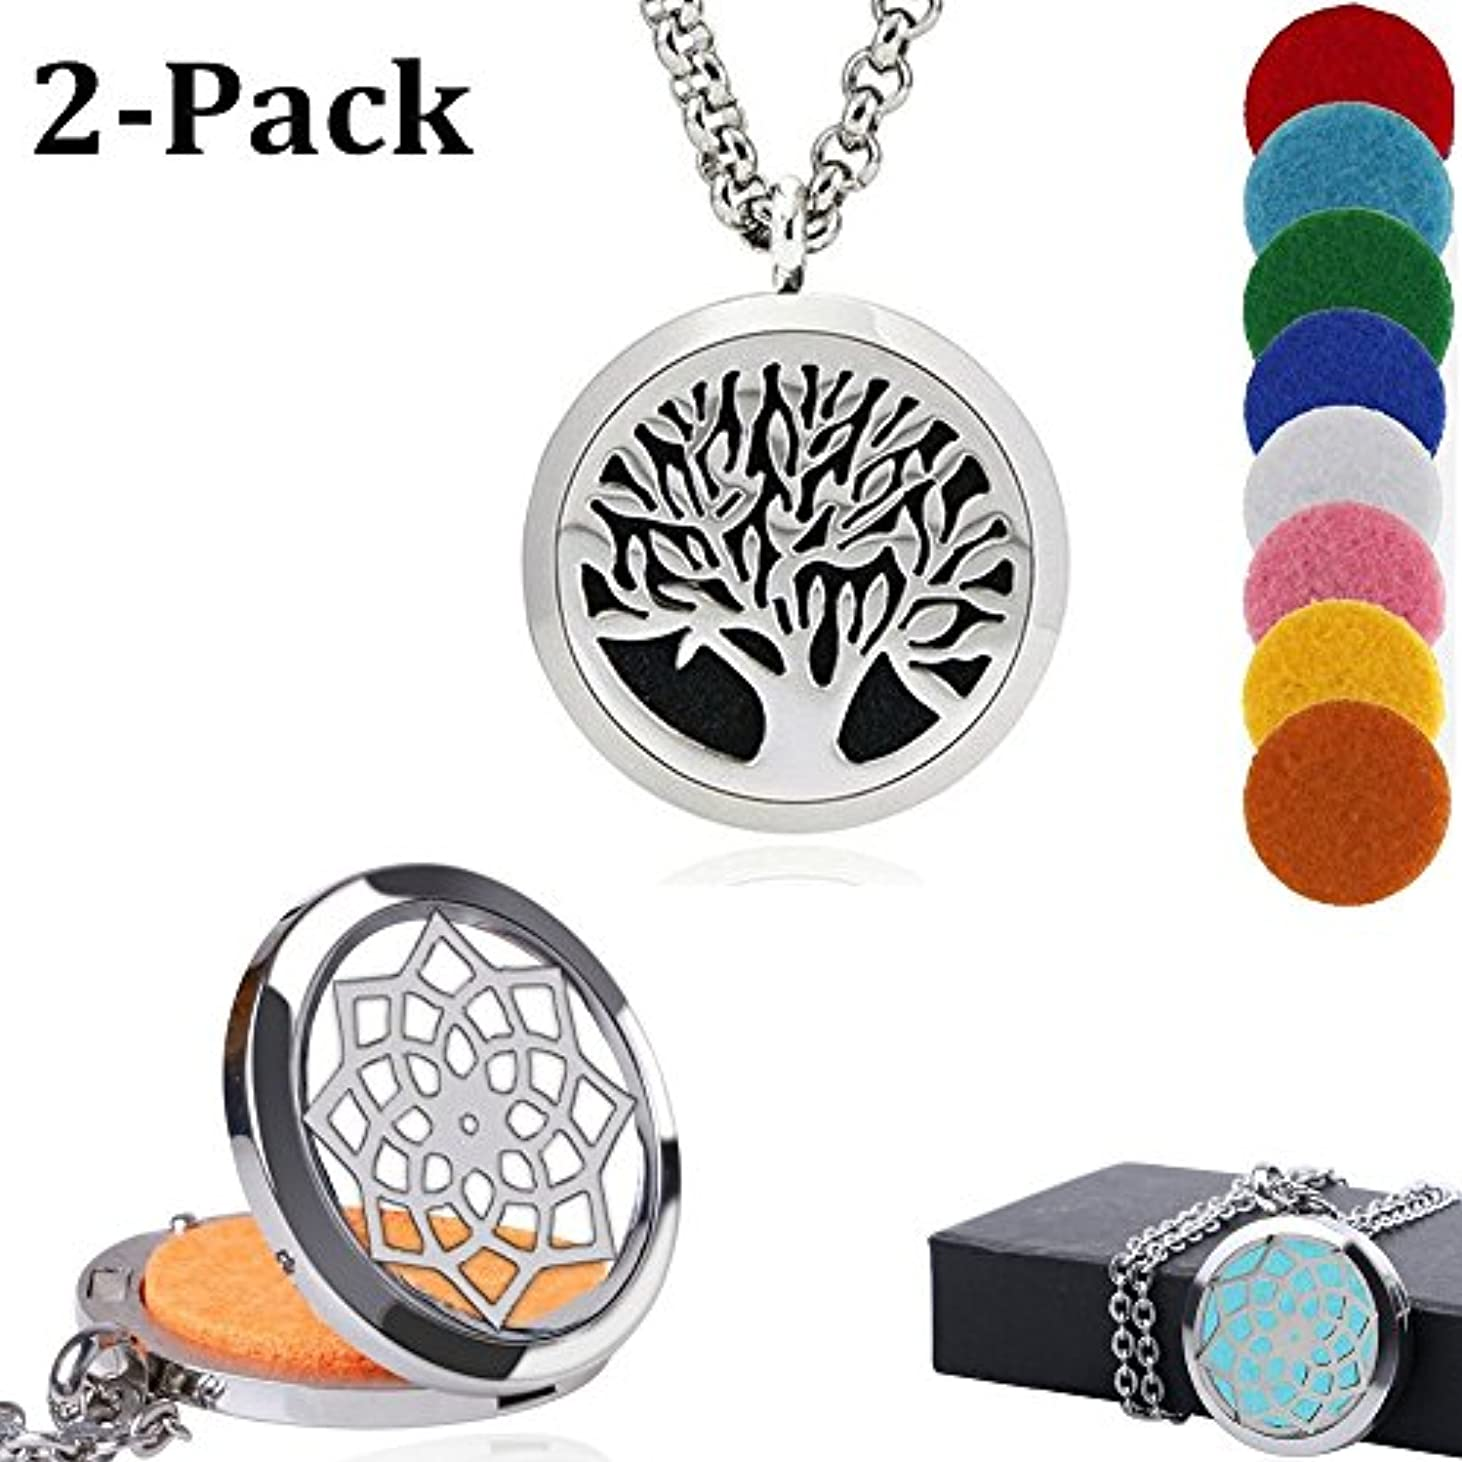 航海の商品相手ablerv Car Air Freshener Perfume Essential Oil Diffuser – Tree of Life 38 mmステンレススチールロケットwith Ventクリップfor Aromatherapy...